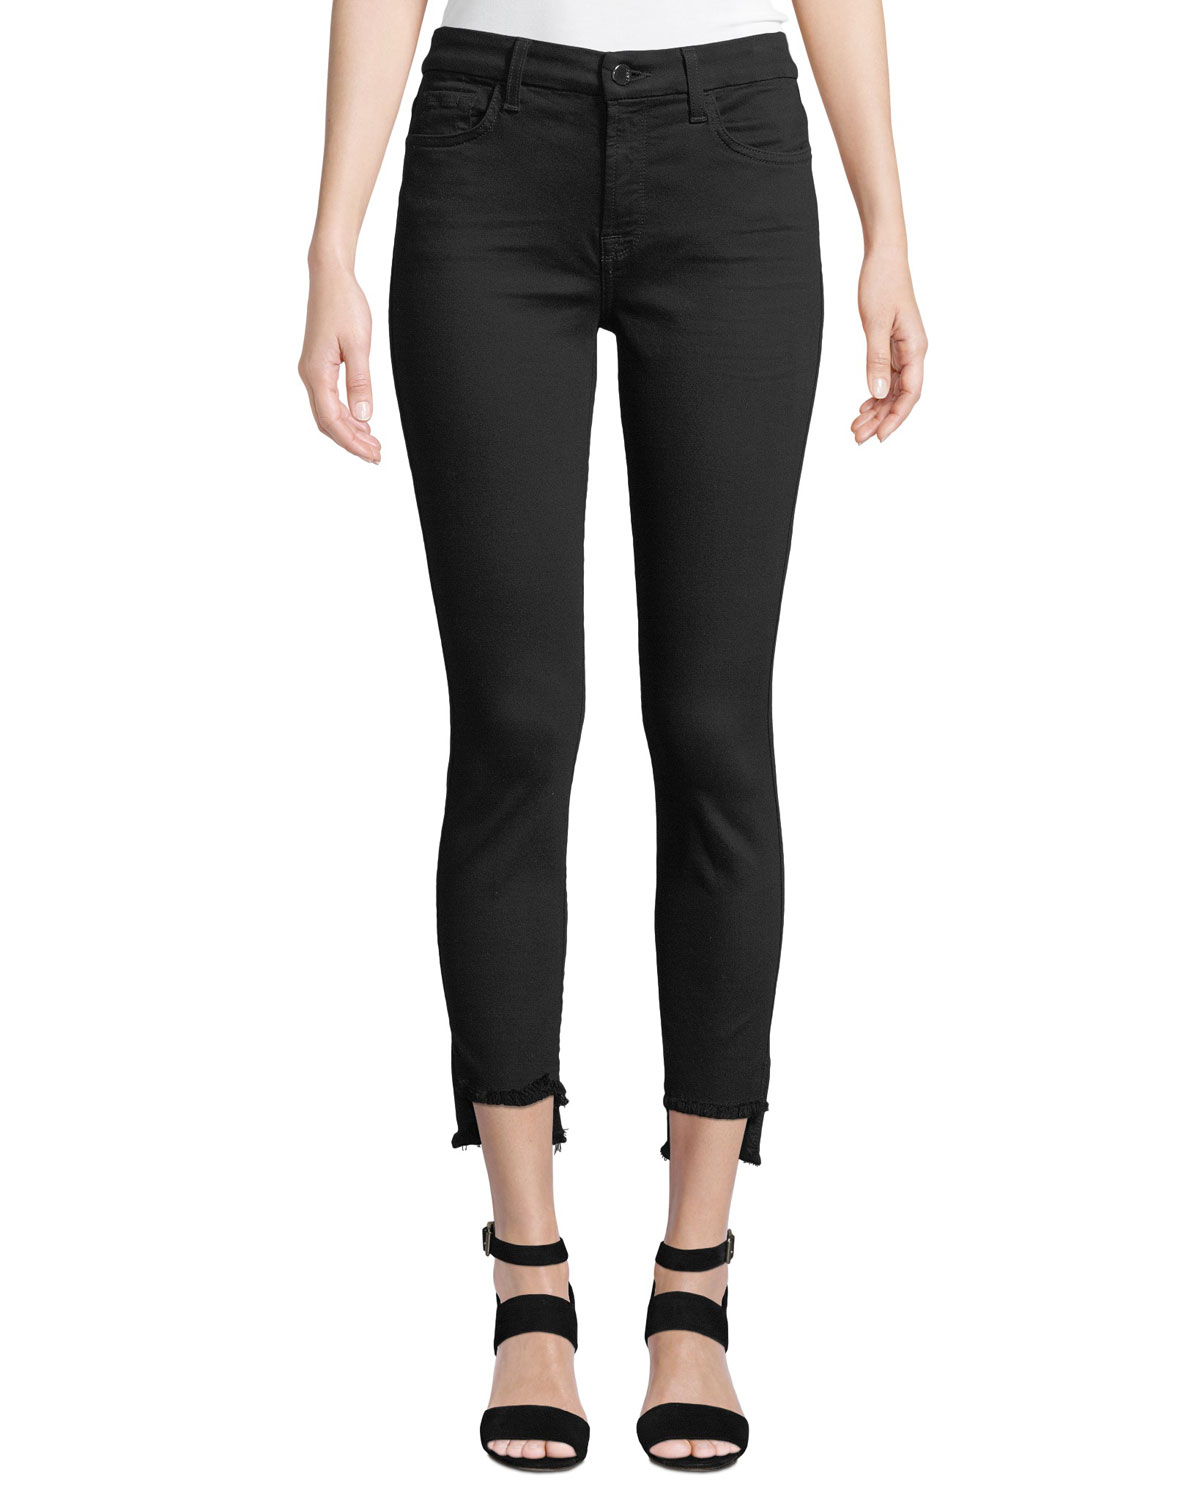 JEN7 Stretch Step Hem Ankle Skinny Jeans in Black